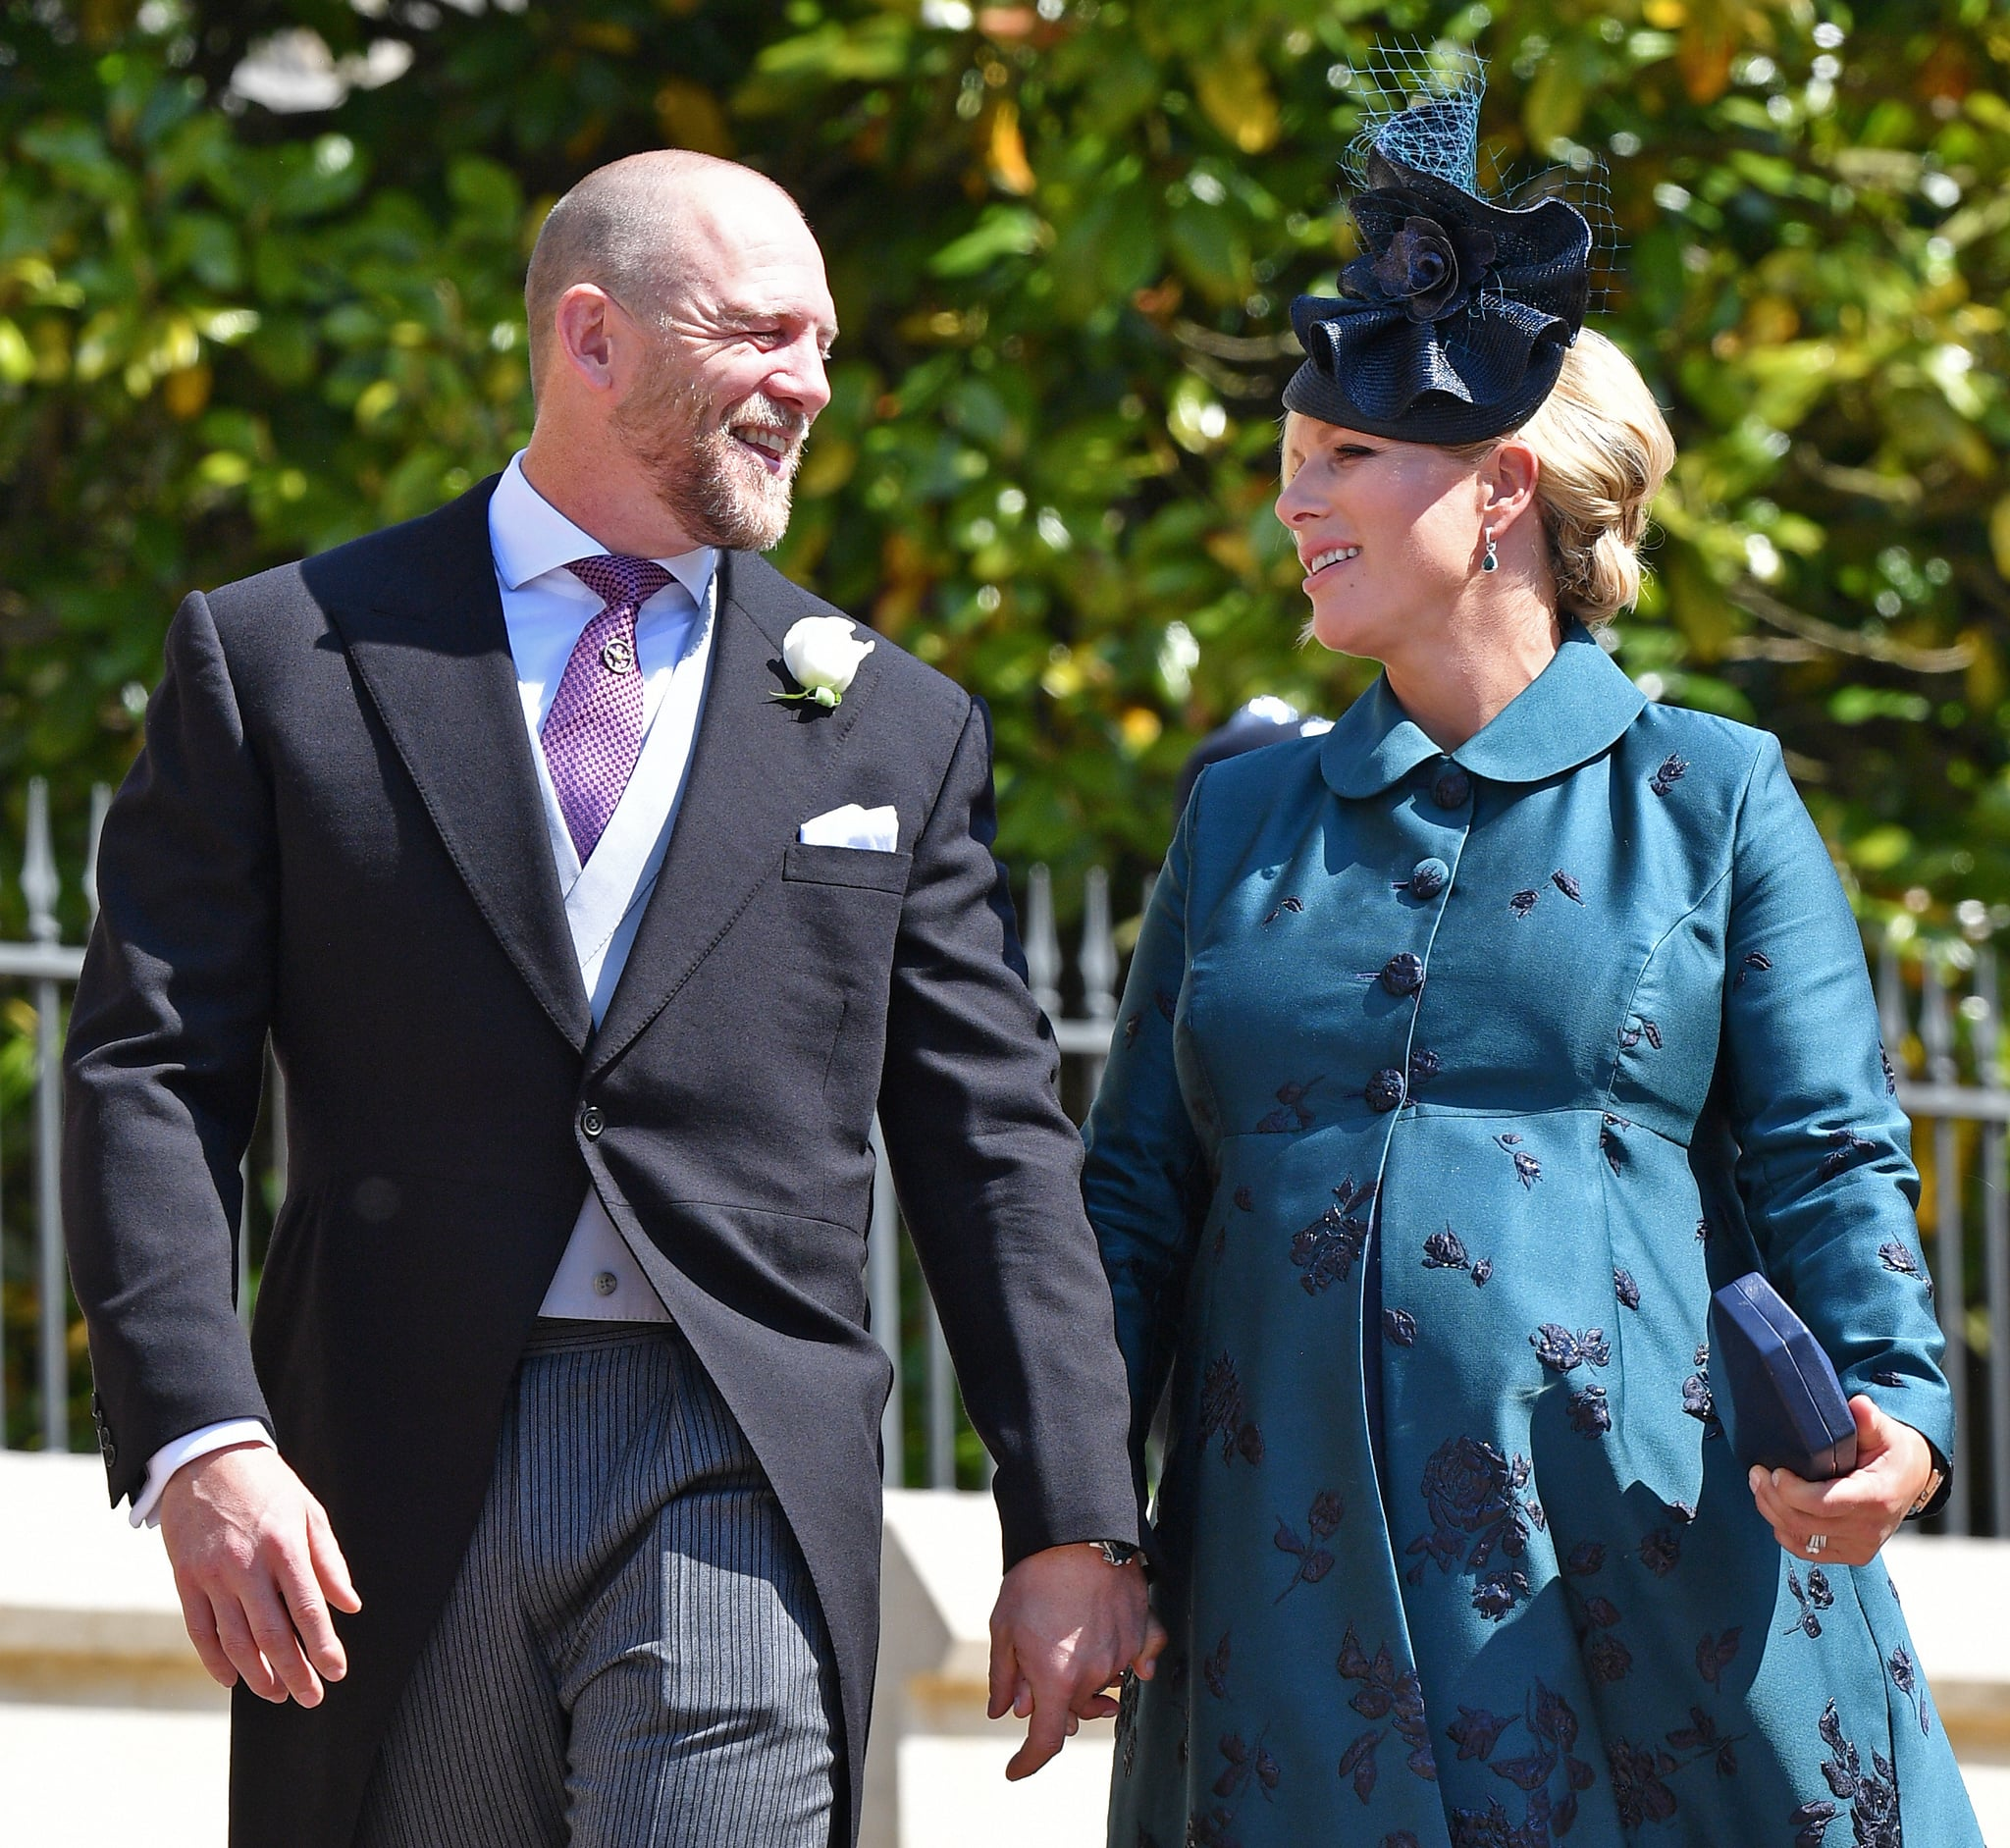 WINDSOR, UNITED KINGDOM - MAY 19: (EMBARGOED FOR PUBLICATION IN UK NEWSPAPERS UNTIL 24 HOURS AFTER CREATE DATE AND TIME) Mike Tindall and Zara Tindall attend the wedding of Prince Harry to Ms Meghan Markle at St George's Chapel, Windsor Castle on May 19, 2018 in Windsor, England. Prince Henry Charles Albert David of Wales marries Ms. Meghan Markle in a service at St George's Chapel inside the grounds of Windsor Castle. Among the guests were 2200 members of the public, the royal family and Ms. Markle's Mother Doria Ragland. (Photo by Pool/Max Mumby/Getty Images)